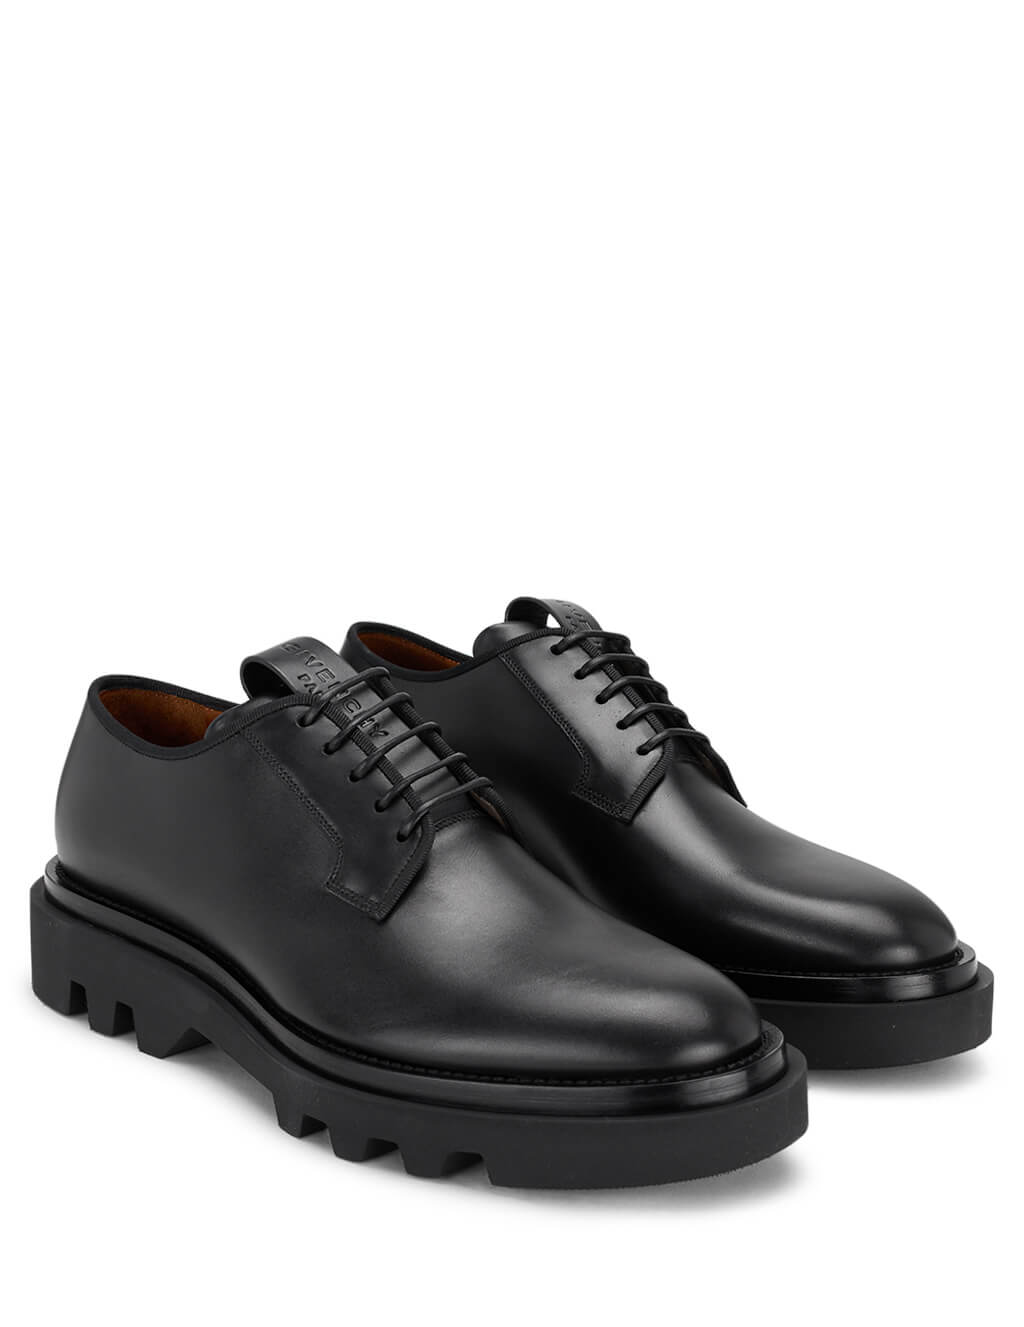 Givenchy Men's Black Leather Combat Derby Shoes BH101XH0KF 001